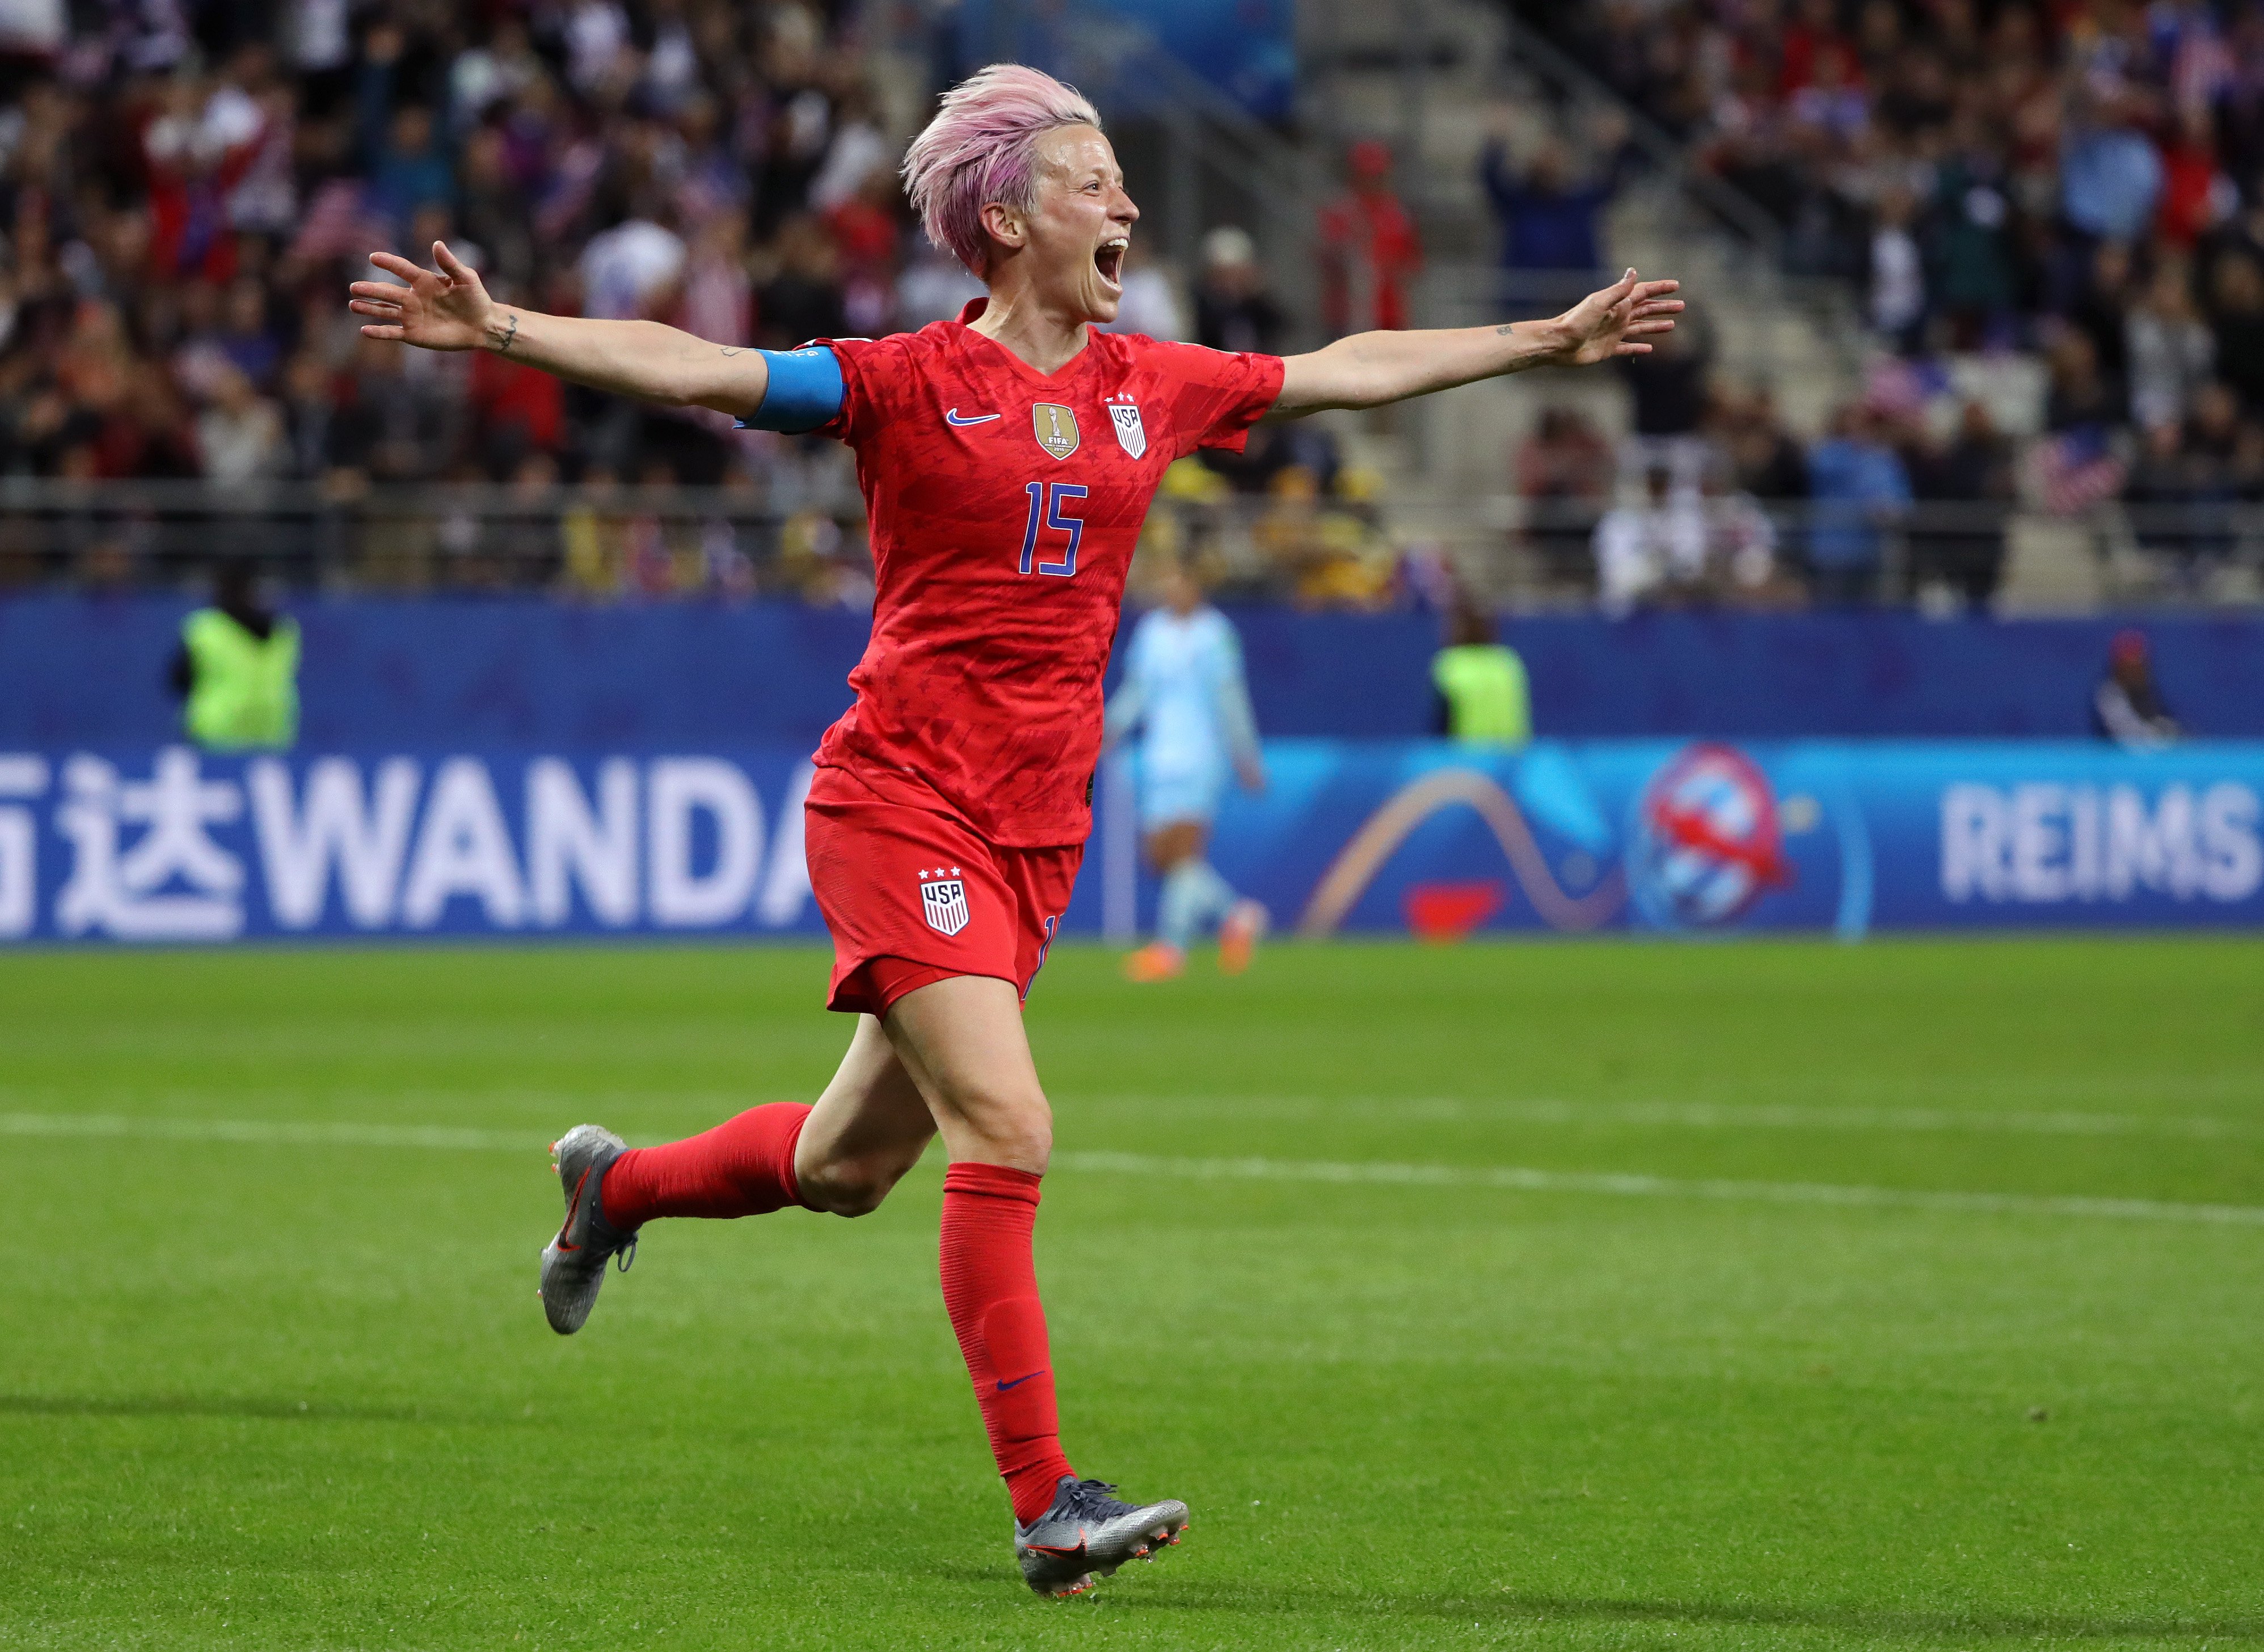 Soccer legend Megan Rapinoe has been named Sports Illustrated's Sportsperson of the Year